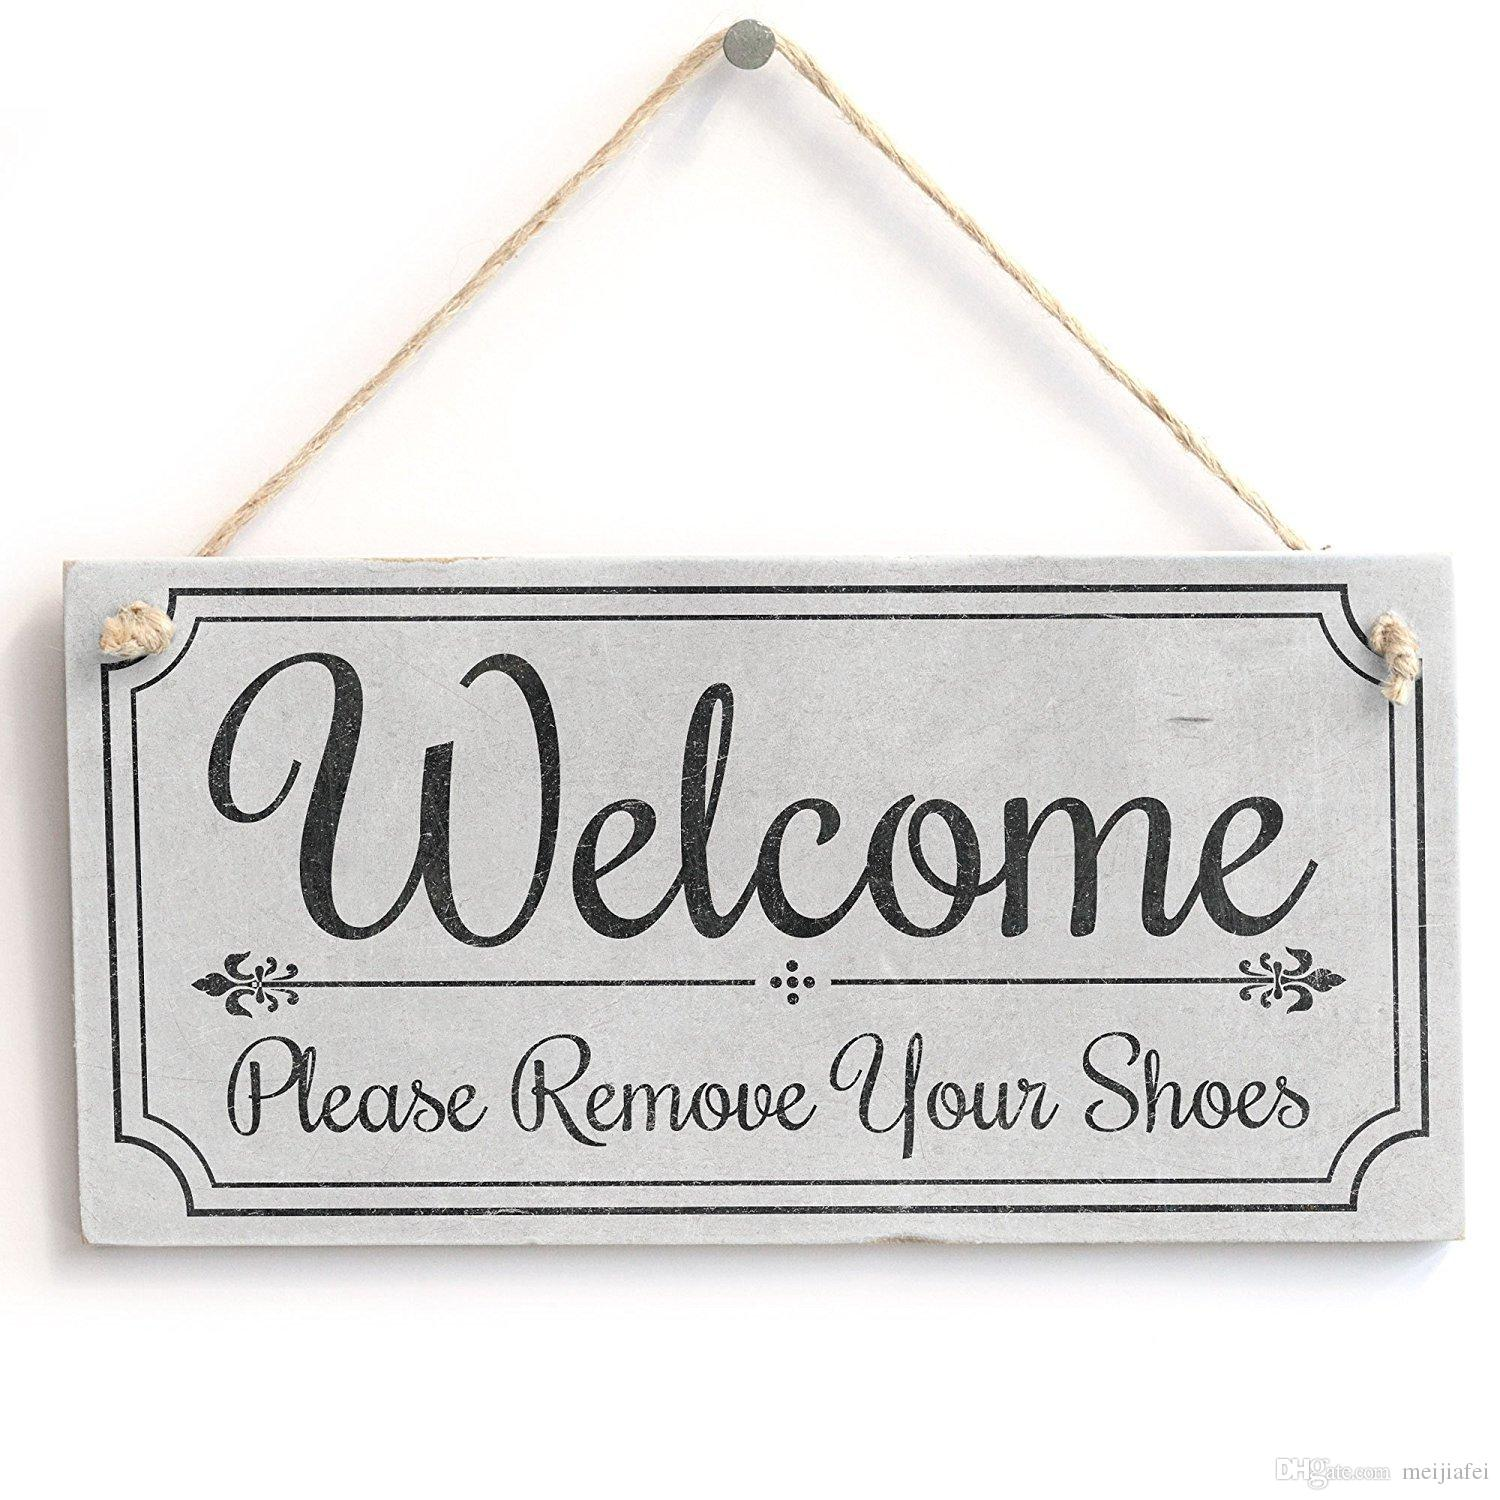 photo about Please Remove Your Shoes Sign Printable Free named Meijiafei Welcome Remember to Take away Your Footwear - Lovable Welcome Indicator - Classic PVC Doorway Signal Plaque 10 x5